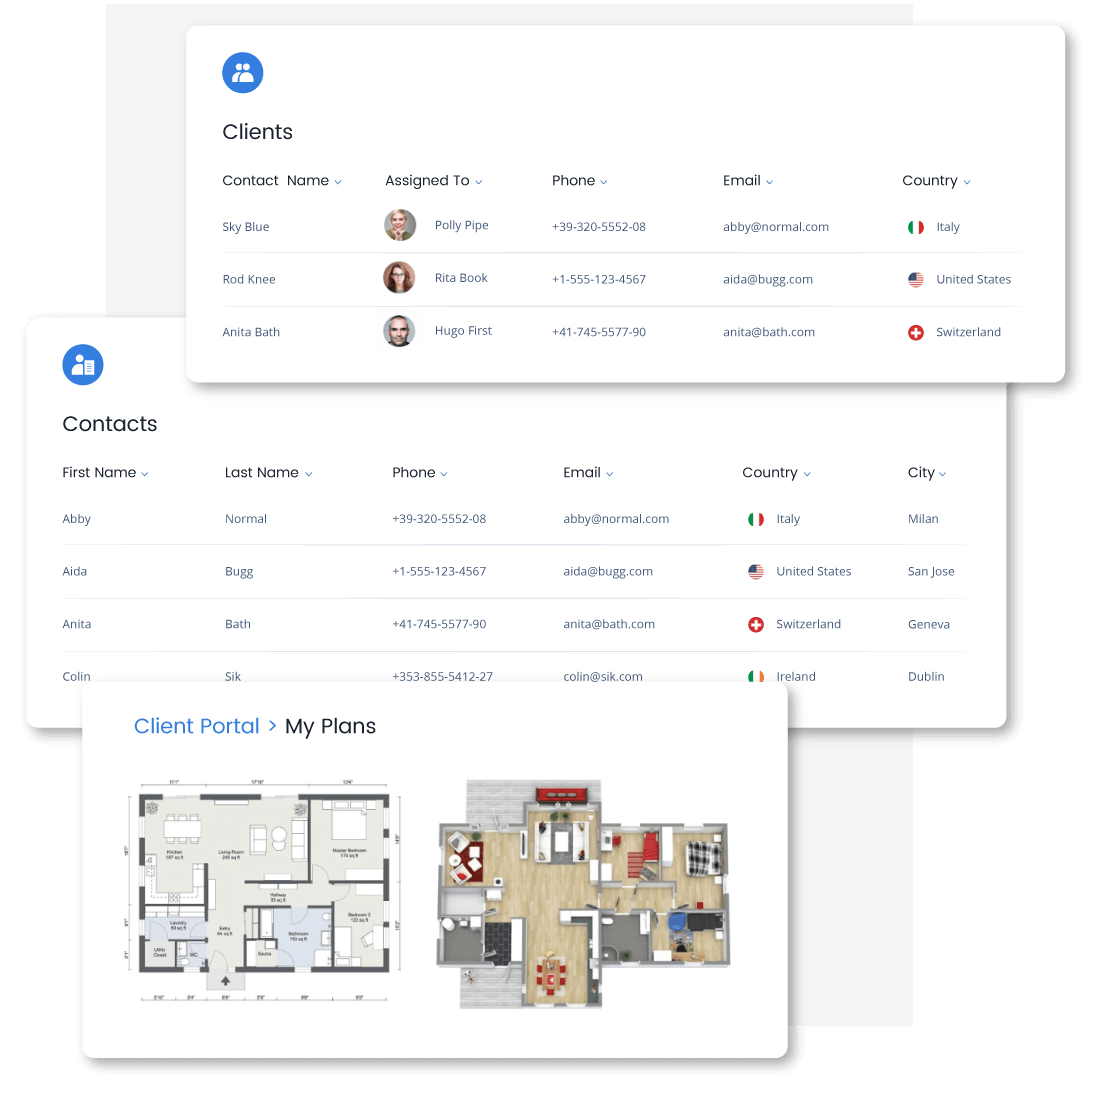 Add clients, provide access to the client portal and view client contracts from Qobrix CRM for real estate